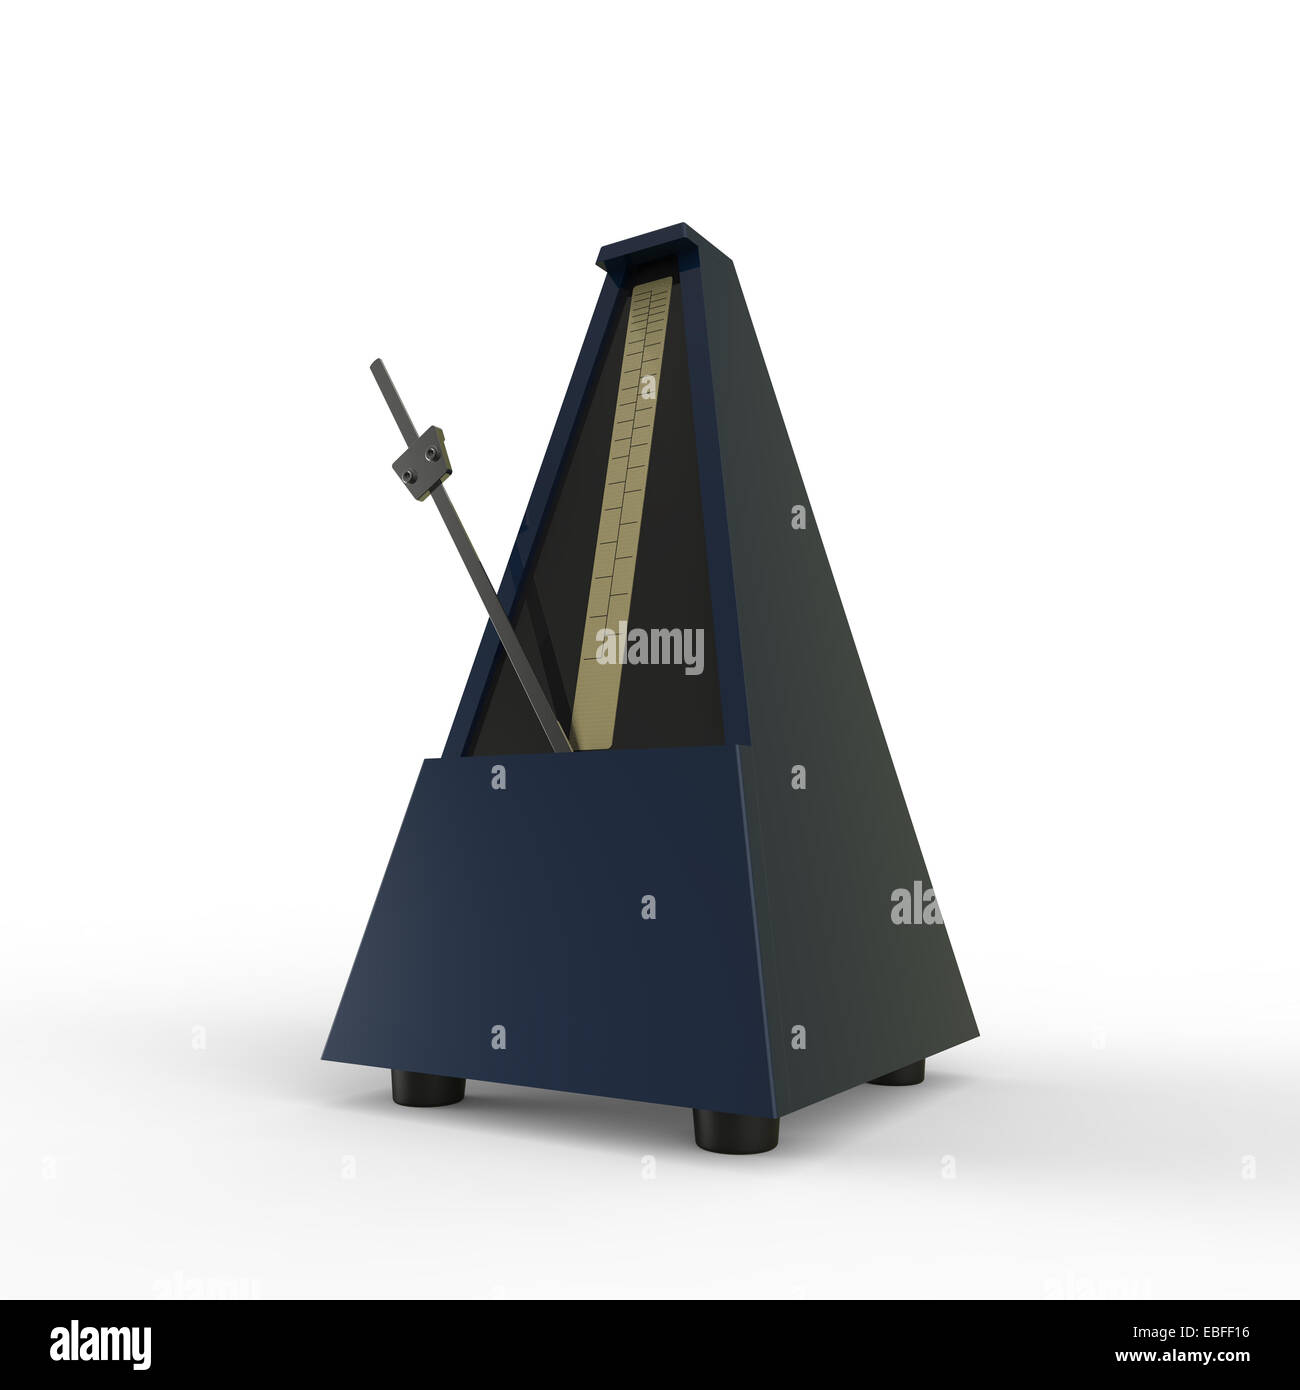 dark blue pyramid shaped wooden metronome on a white background used for music practice to keep the rhythm - Stock Image